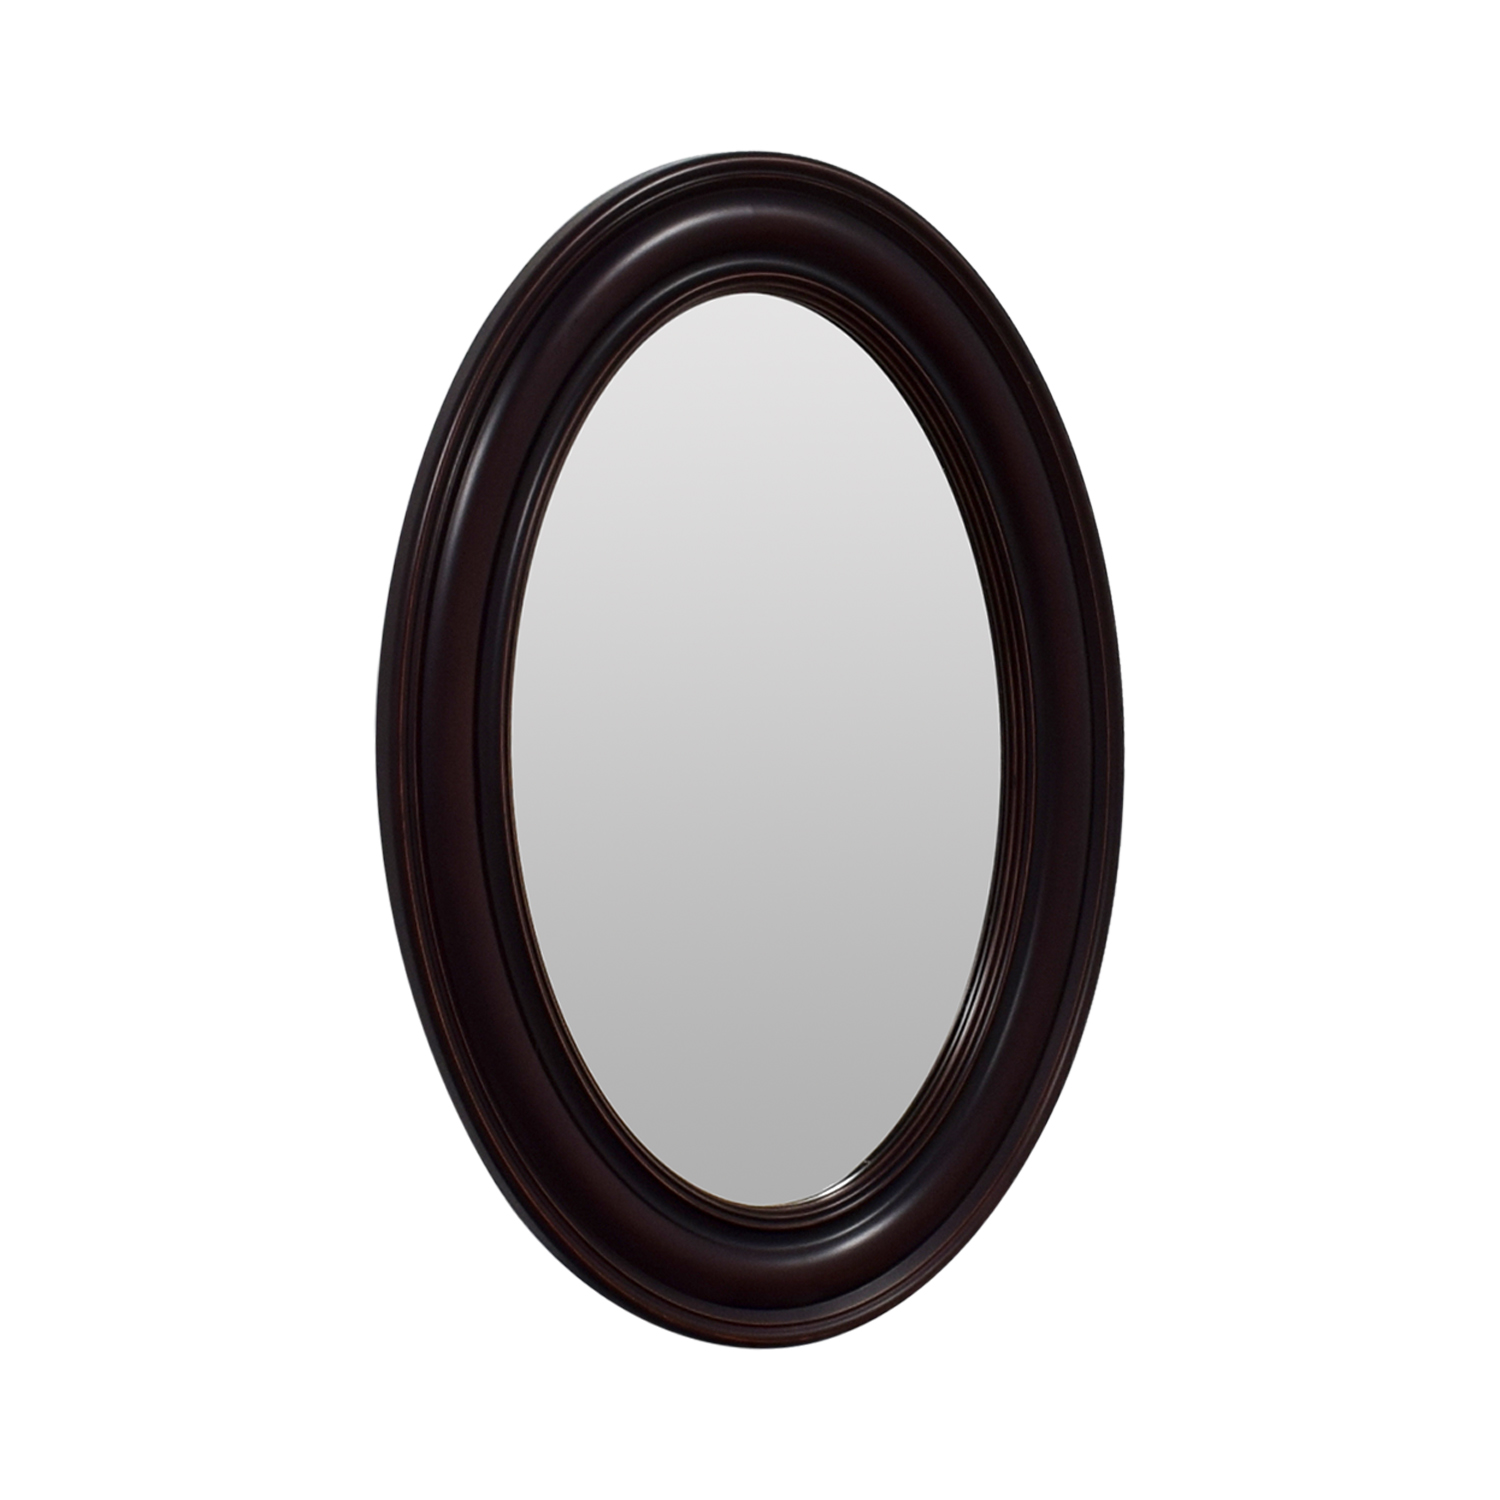 Pottery Barn Pottery Barn Oval Mirror discount